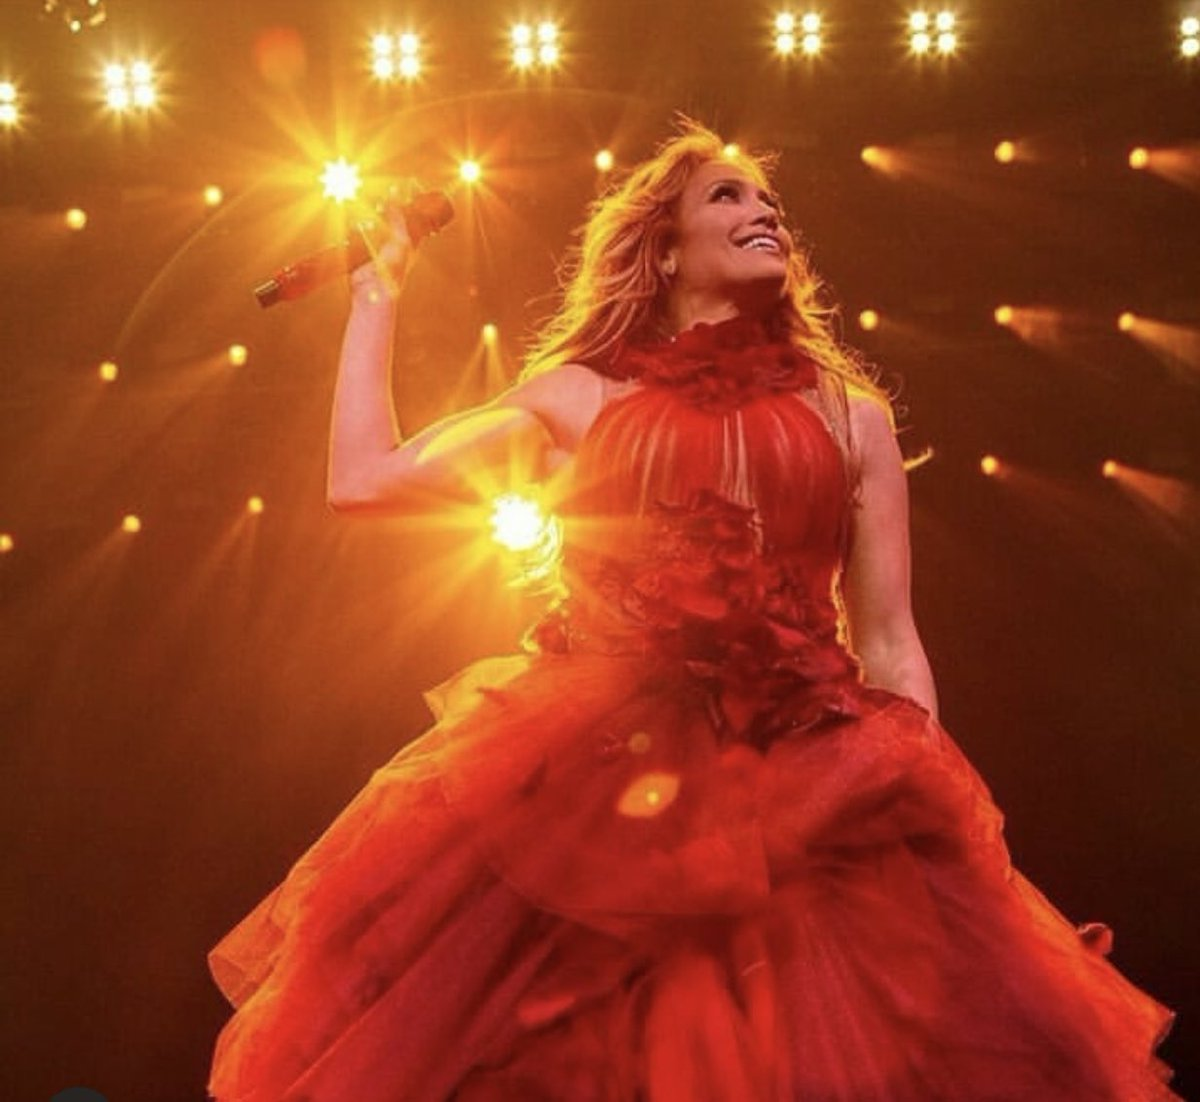 RT @NAPPYTABS: A birthday worthy of a queen #Happy50th @jlo #ItsMyPartyTour #HappyBirthday https://t.co/FJLcs99oWv